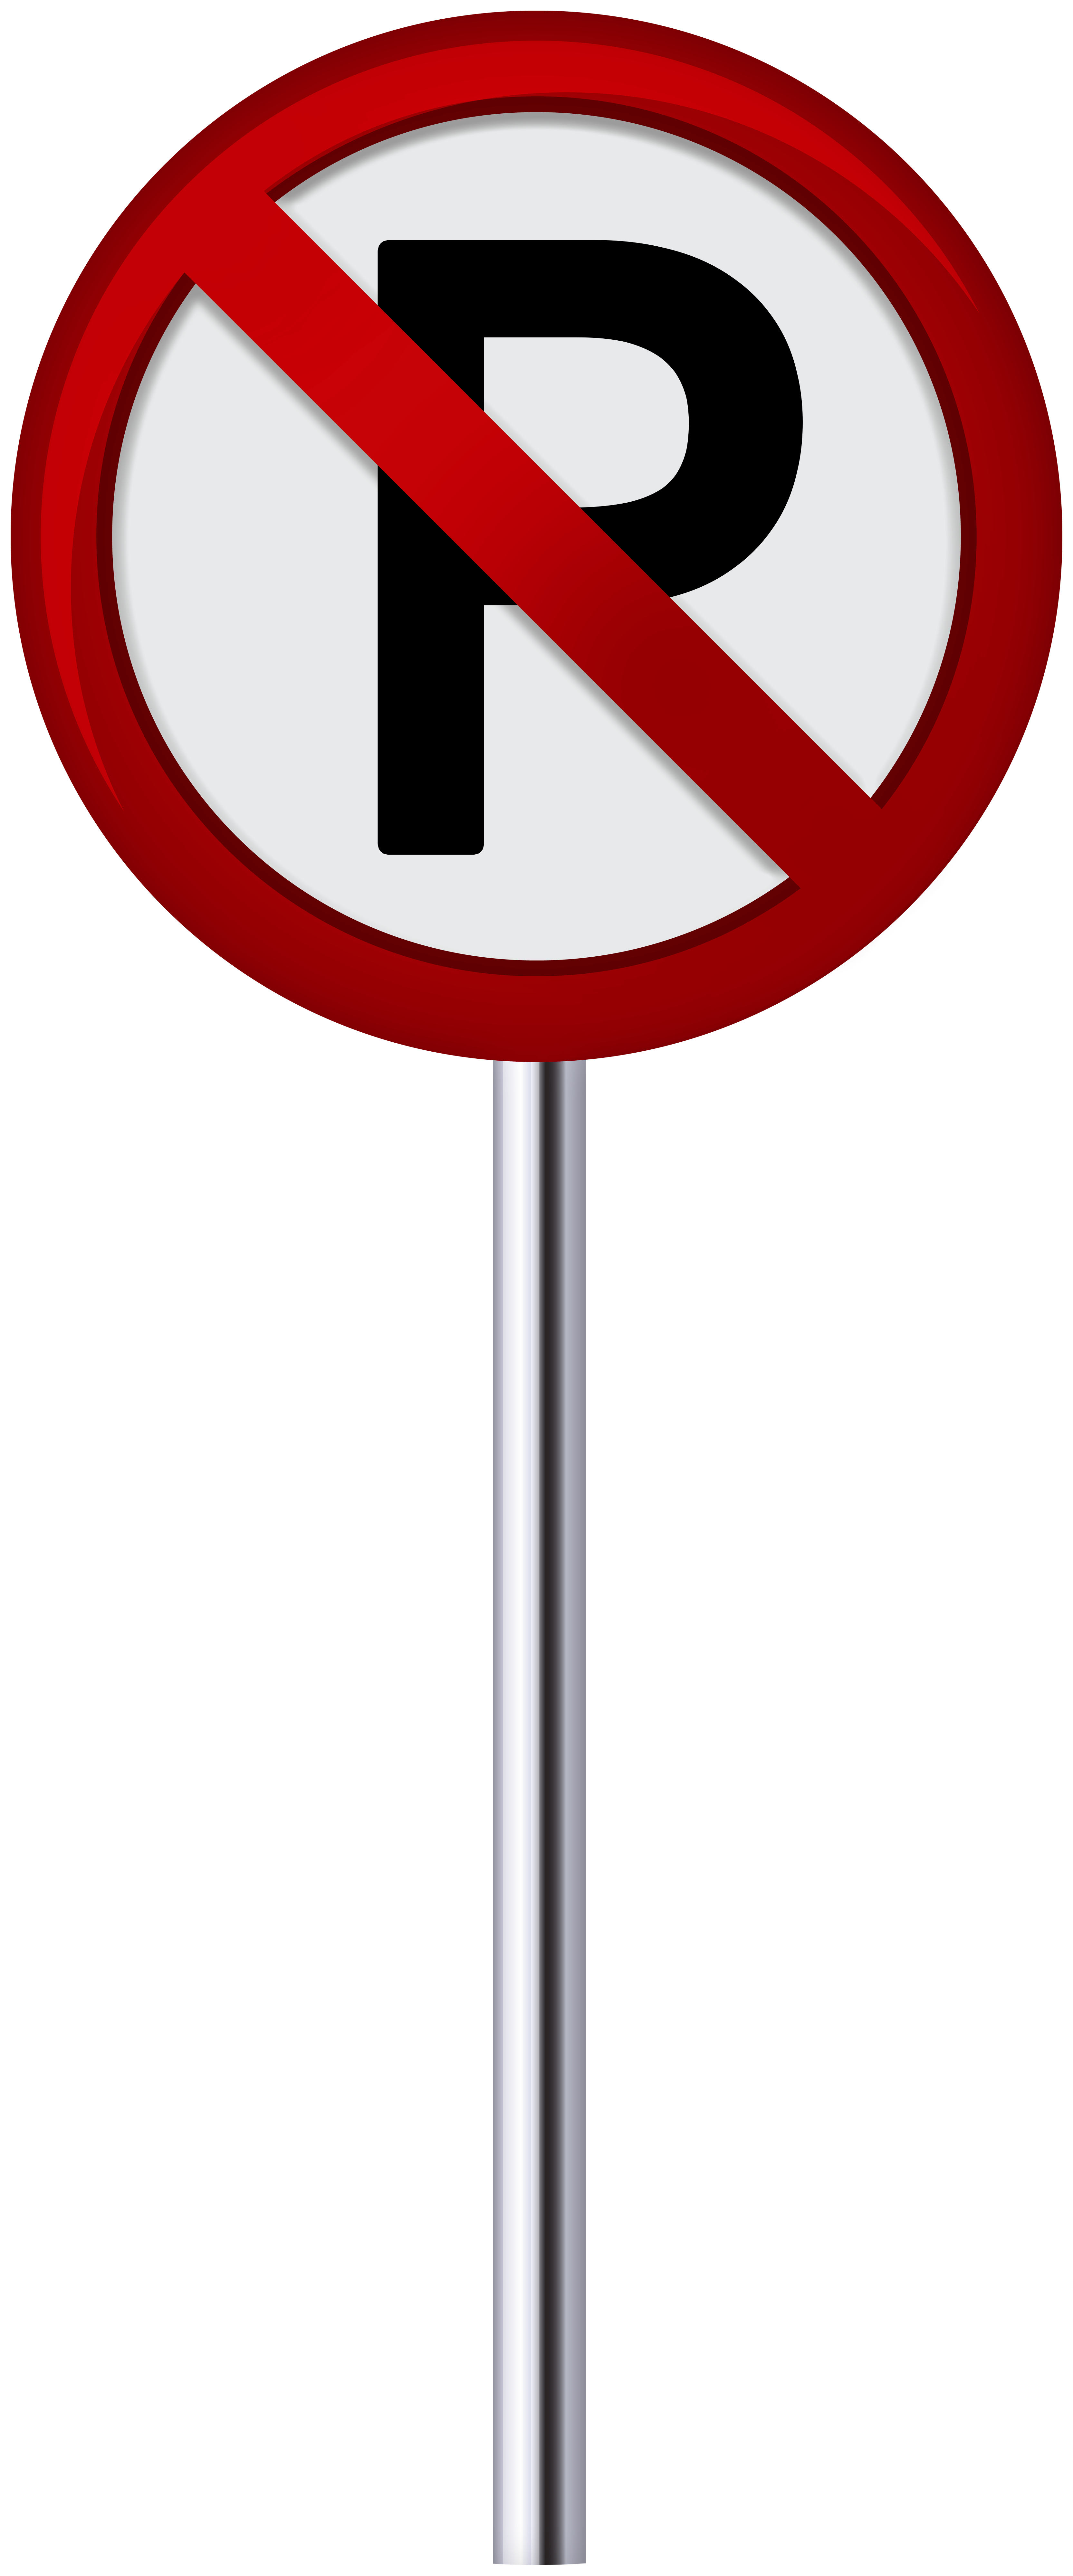 No parking signs clipart jpg library download No Parking Sign PNG Clip Art - Best WEB Clipart jpg library download